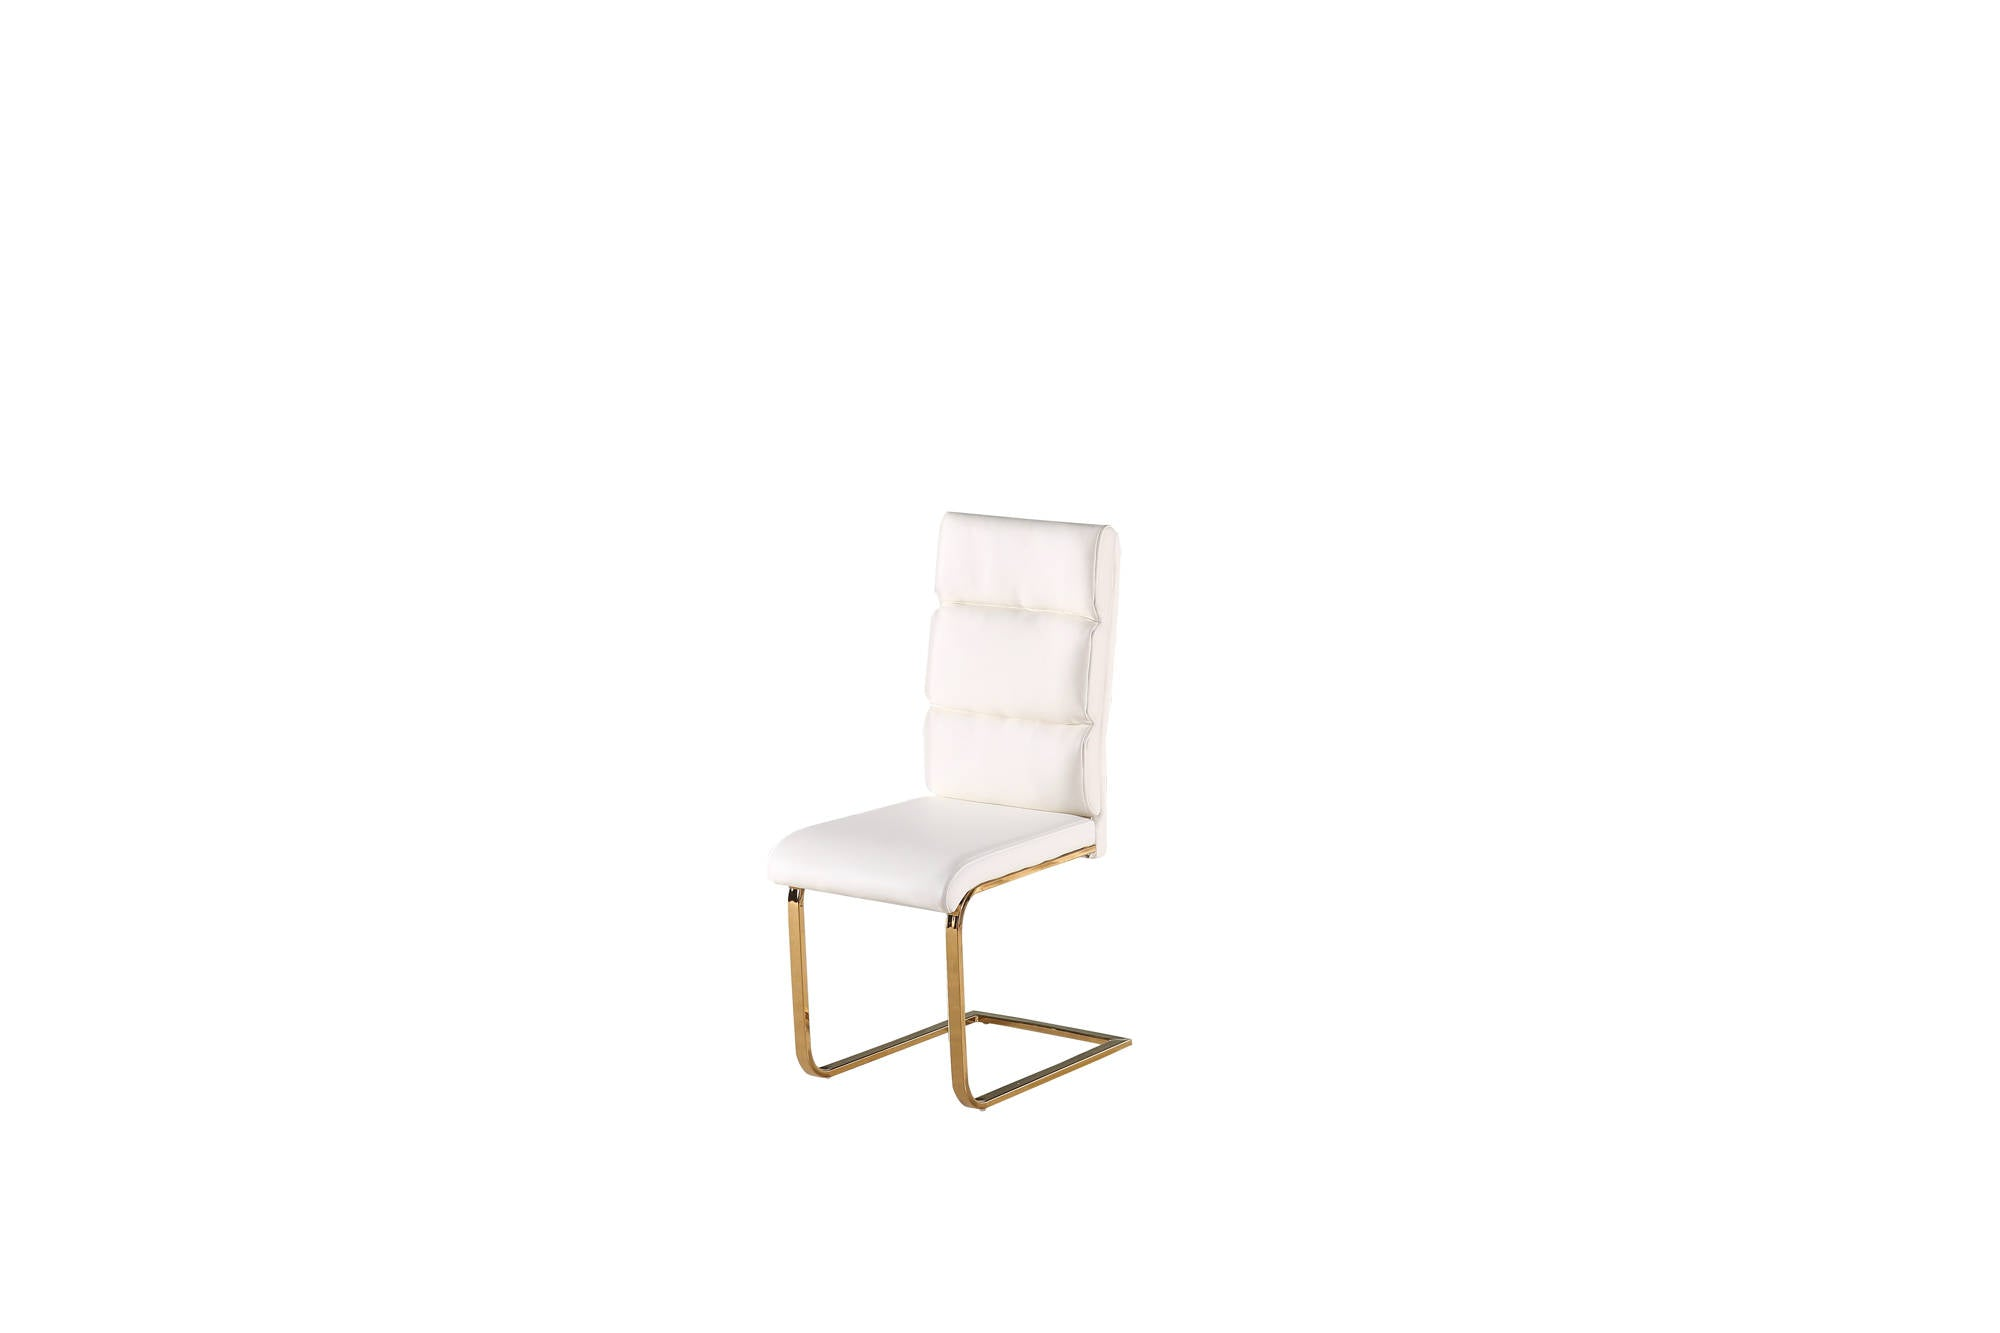 Nova Dining Chair in White Pair - Ezzo